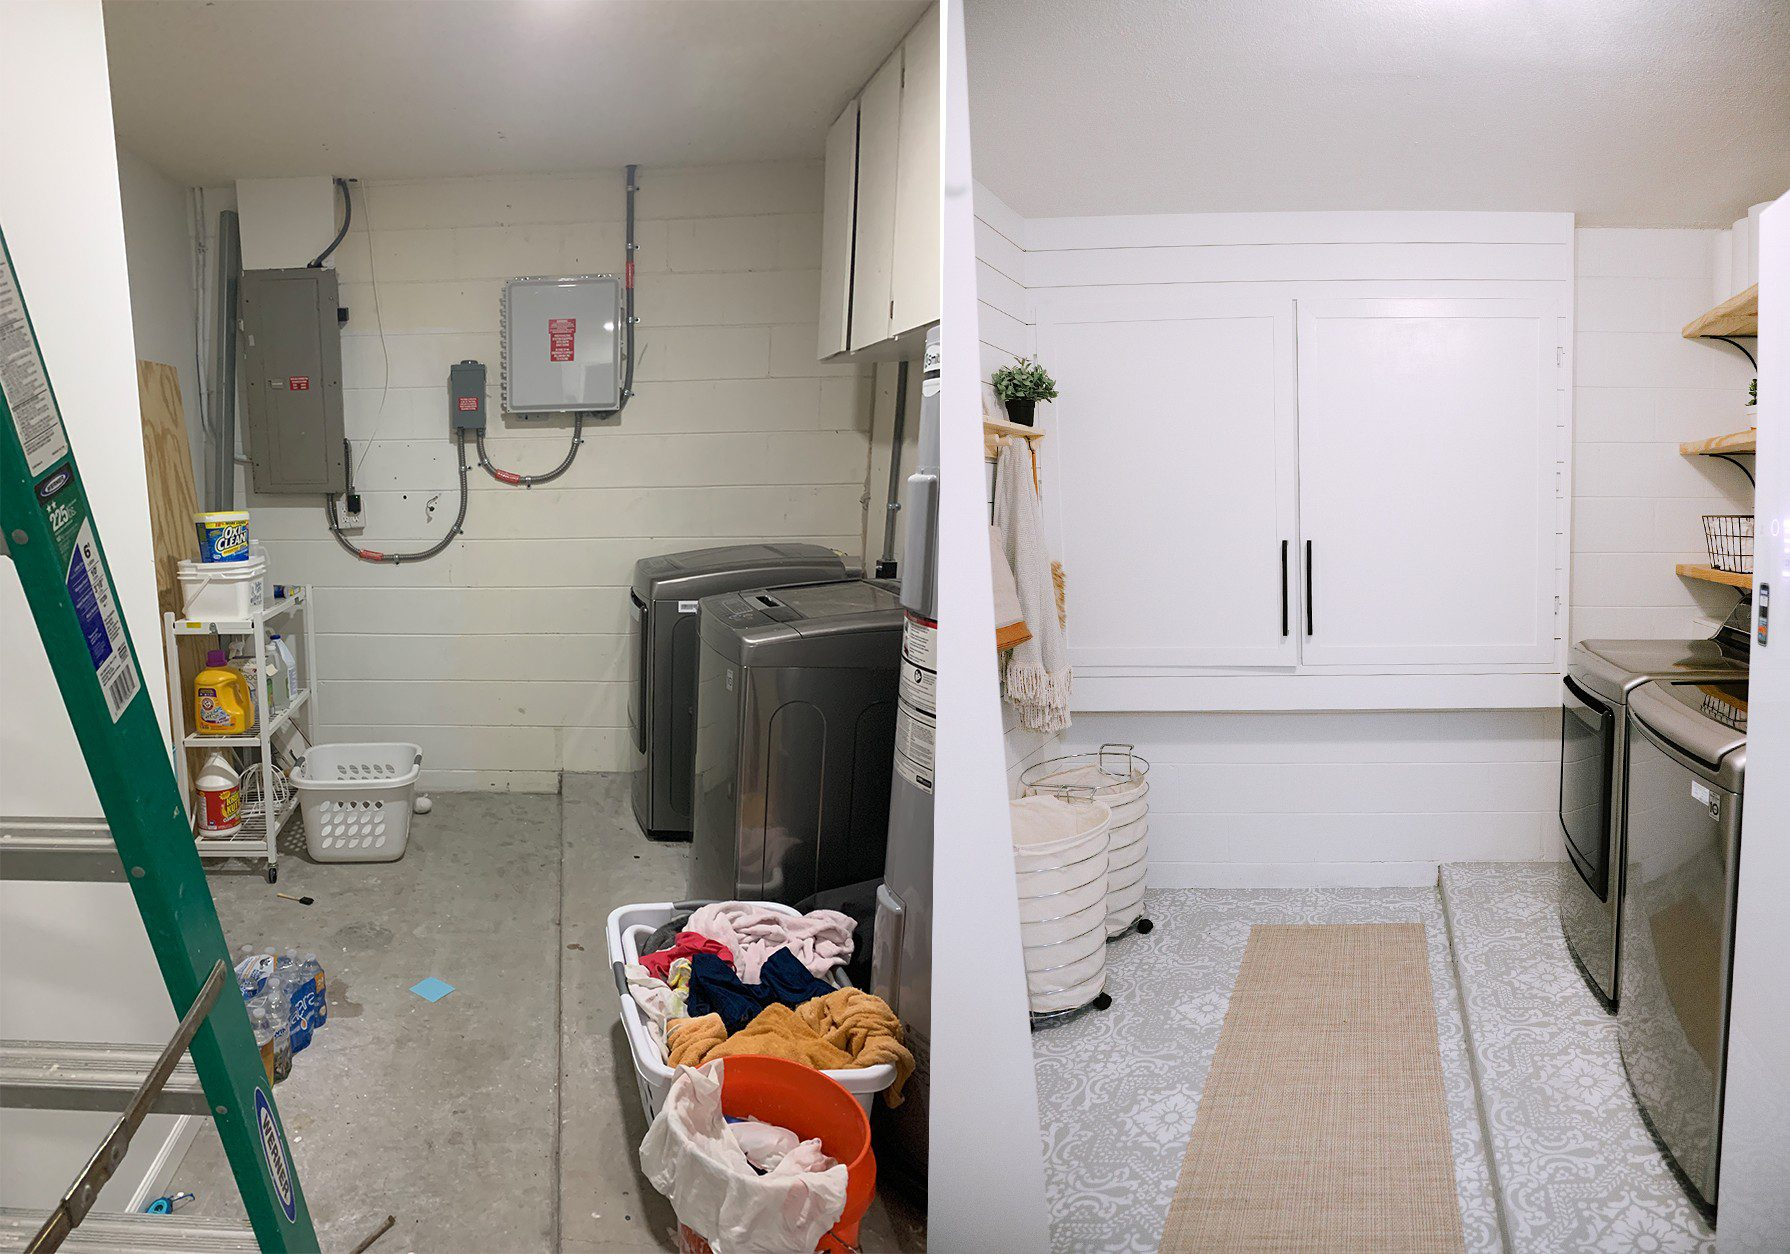 How We Designed a Family Friendly Laundry Room in our Garage - The Reveal! | Laundry Room DIY: How to Paint a Cement Floor with Stencils by popular home decor blog, Fresh Mommy: before and after image of a laundry room remodel.